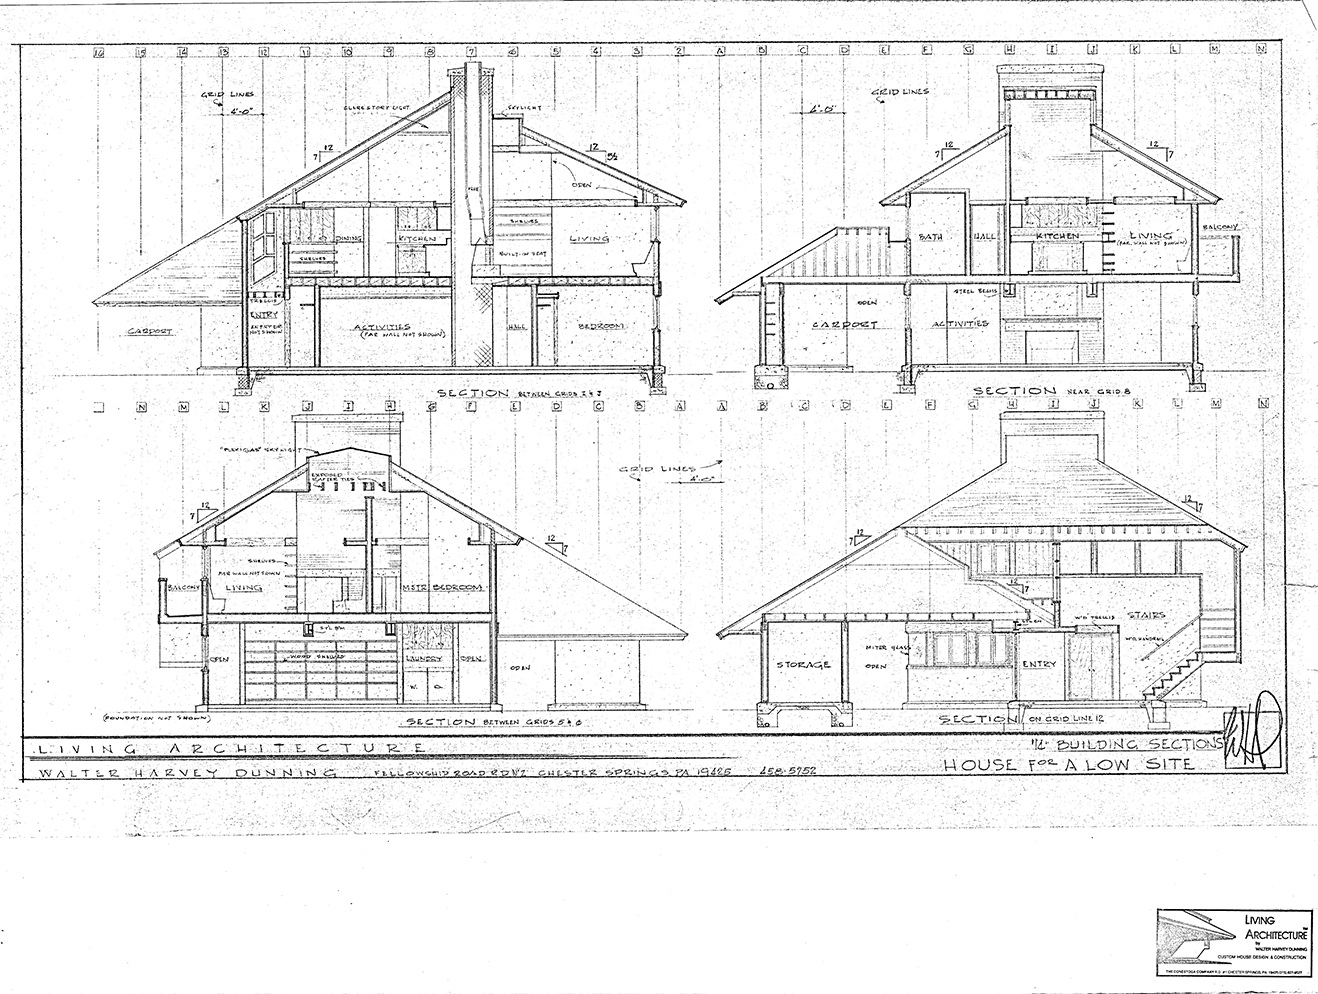 house for sale elverson dunning house cross-section